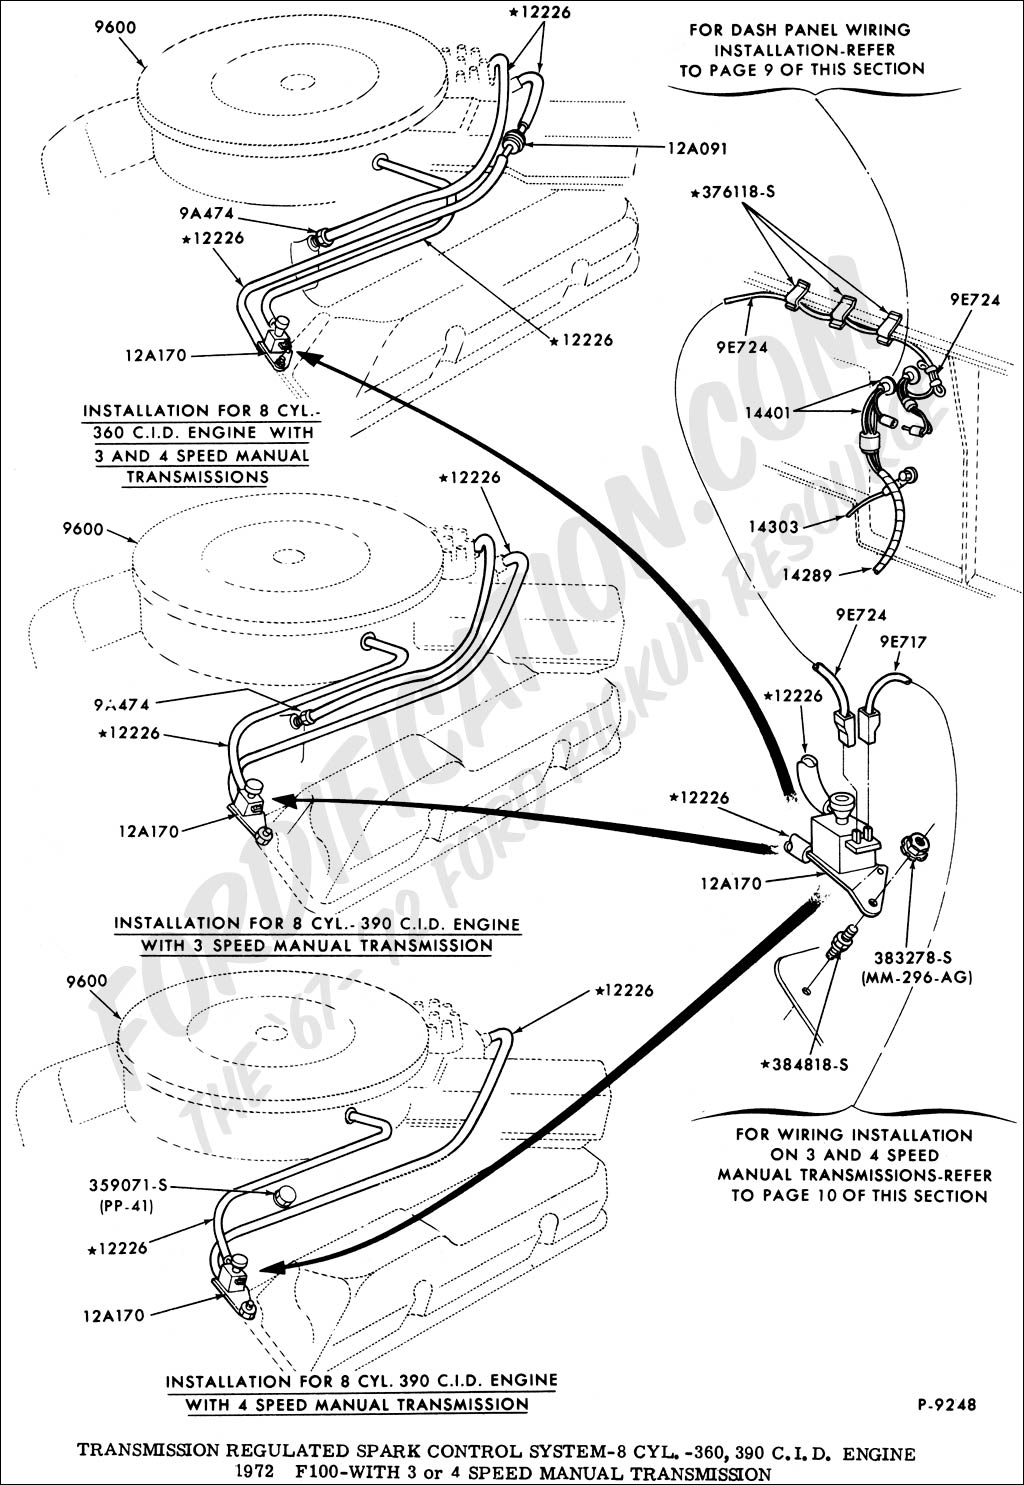 78 ford bronco vacuum diagram  78  free engine image for